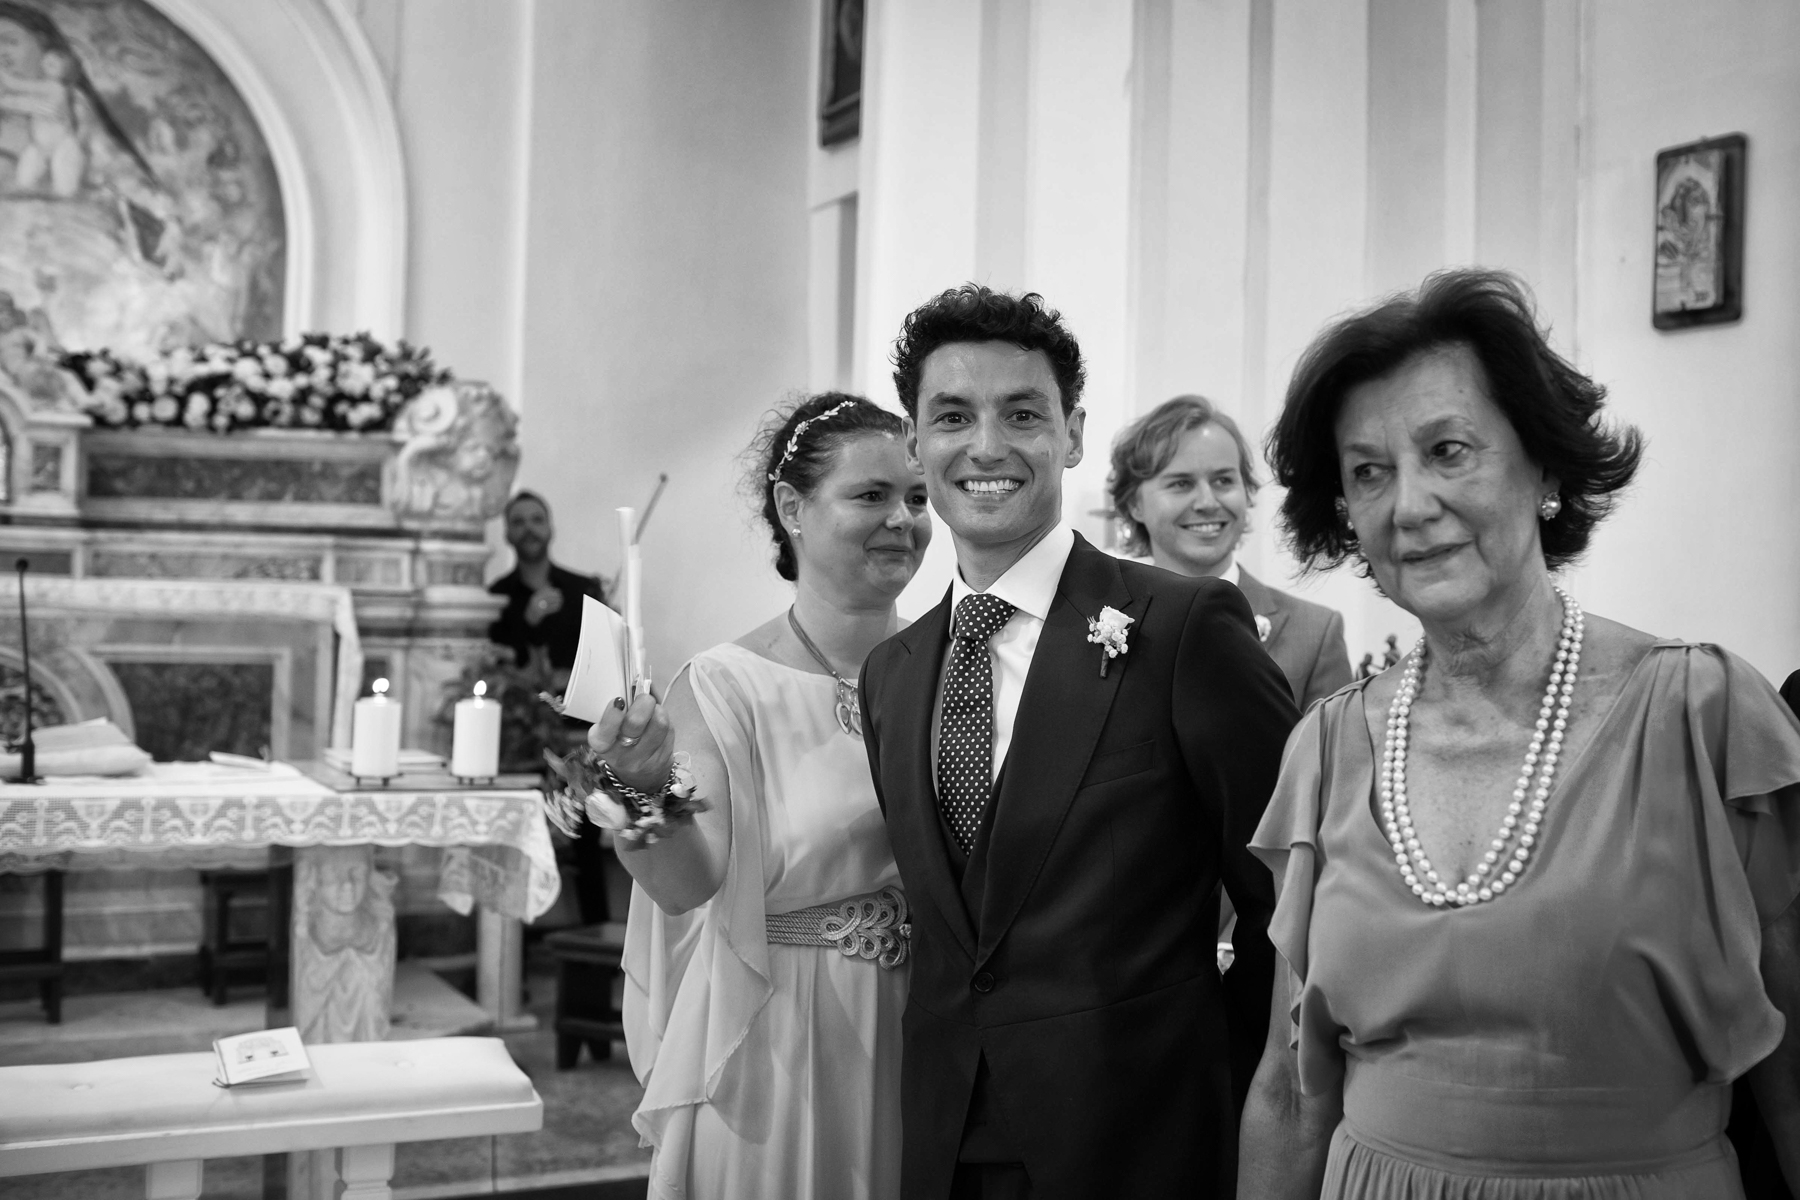 0090-_MG_8854-Modificafotografo-matrimonio-napoli-scattidamore